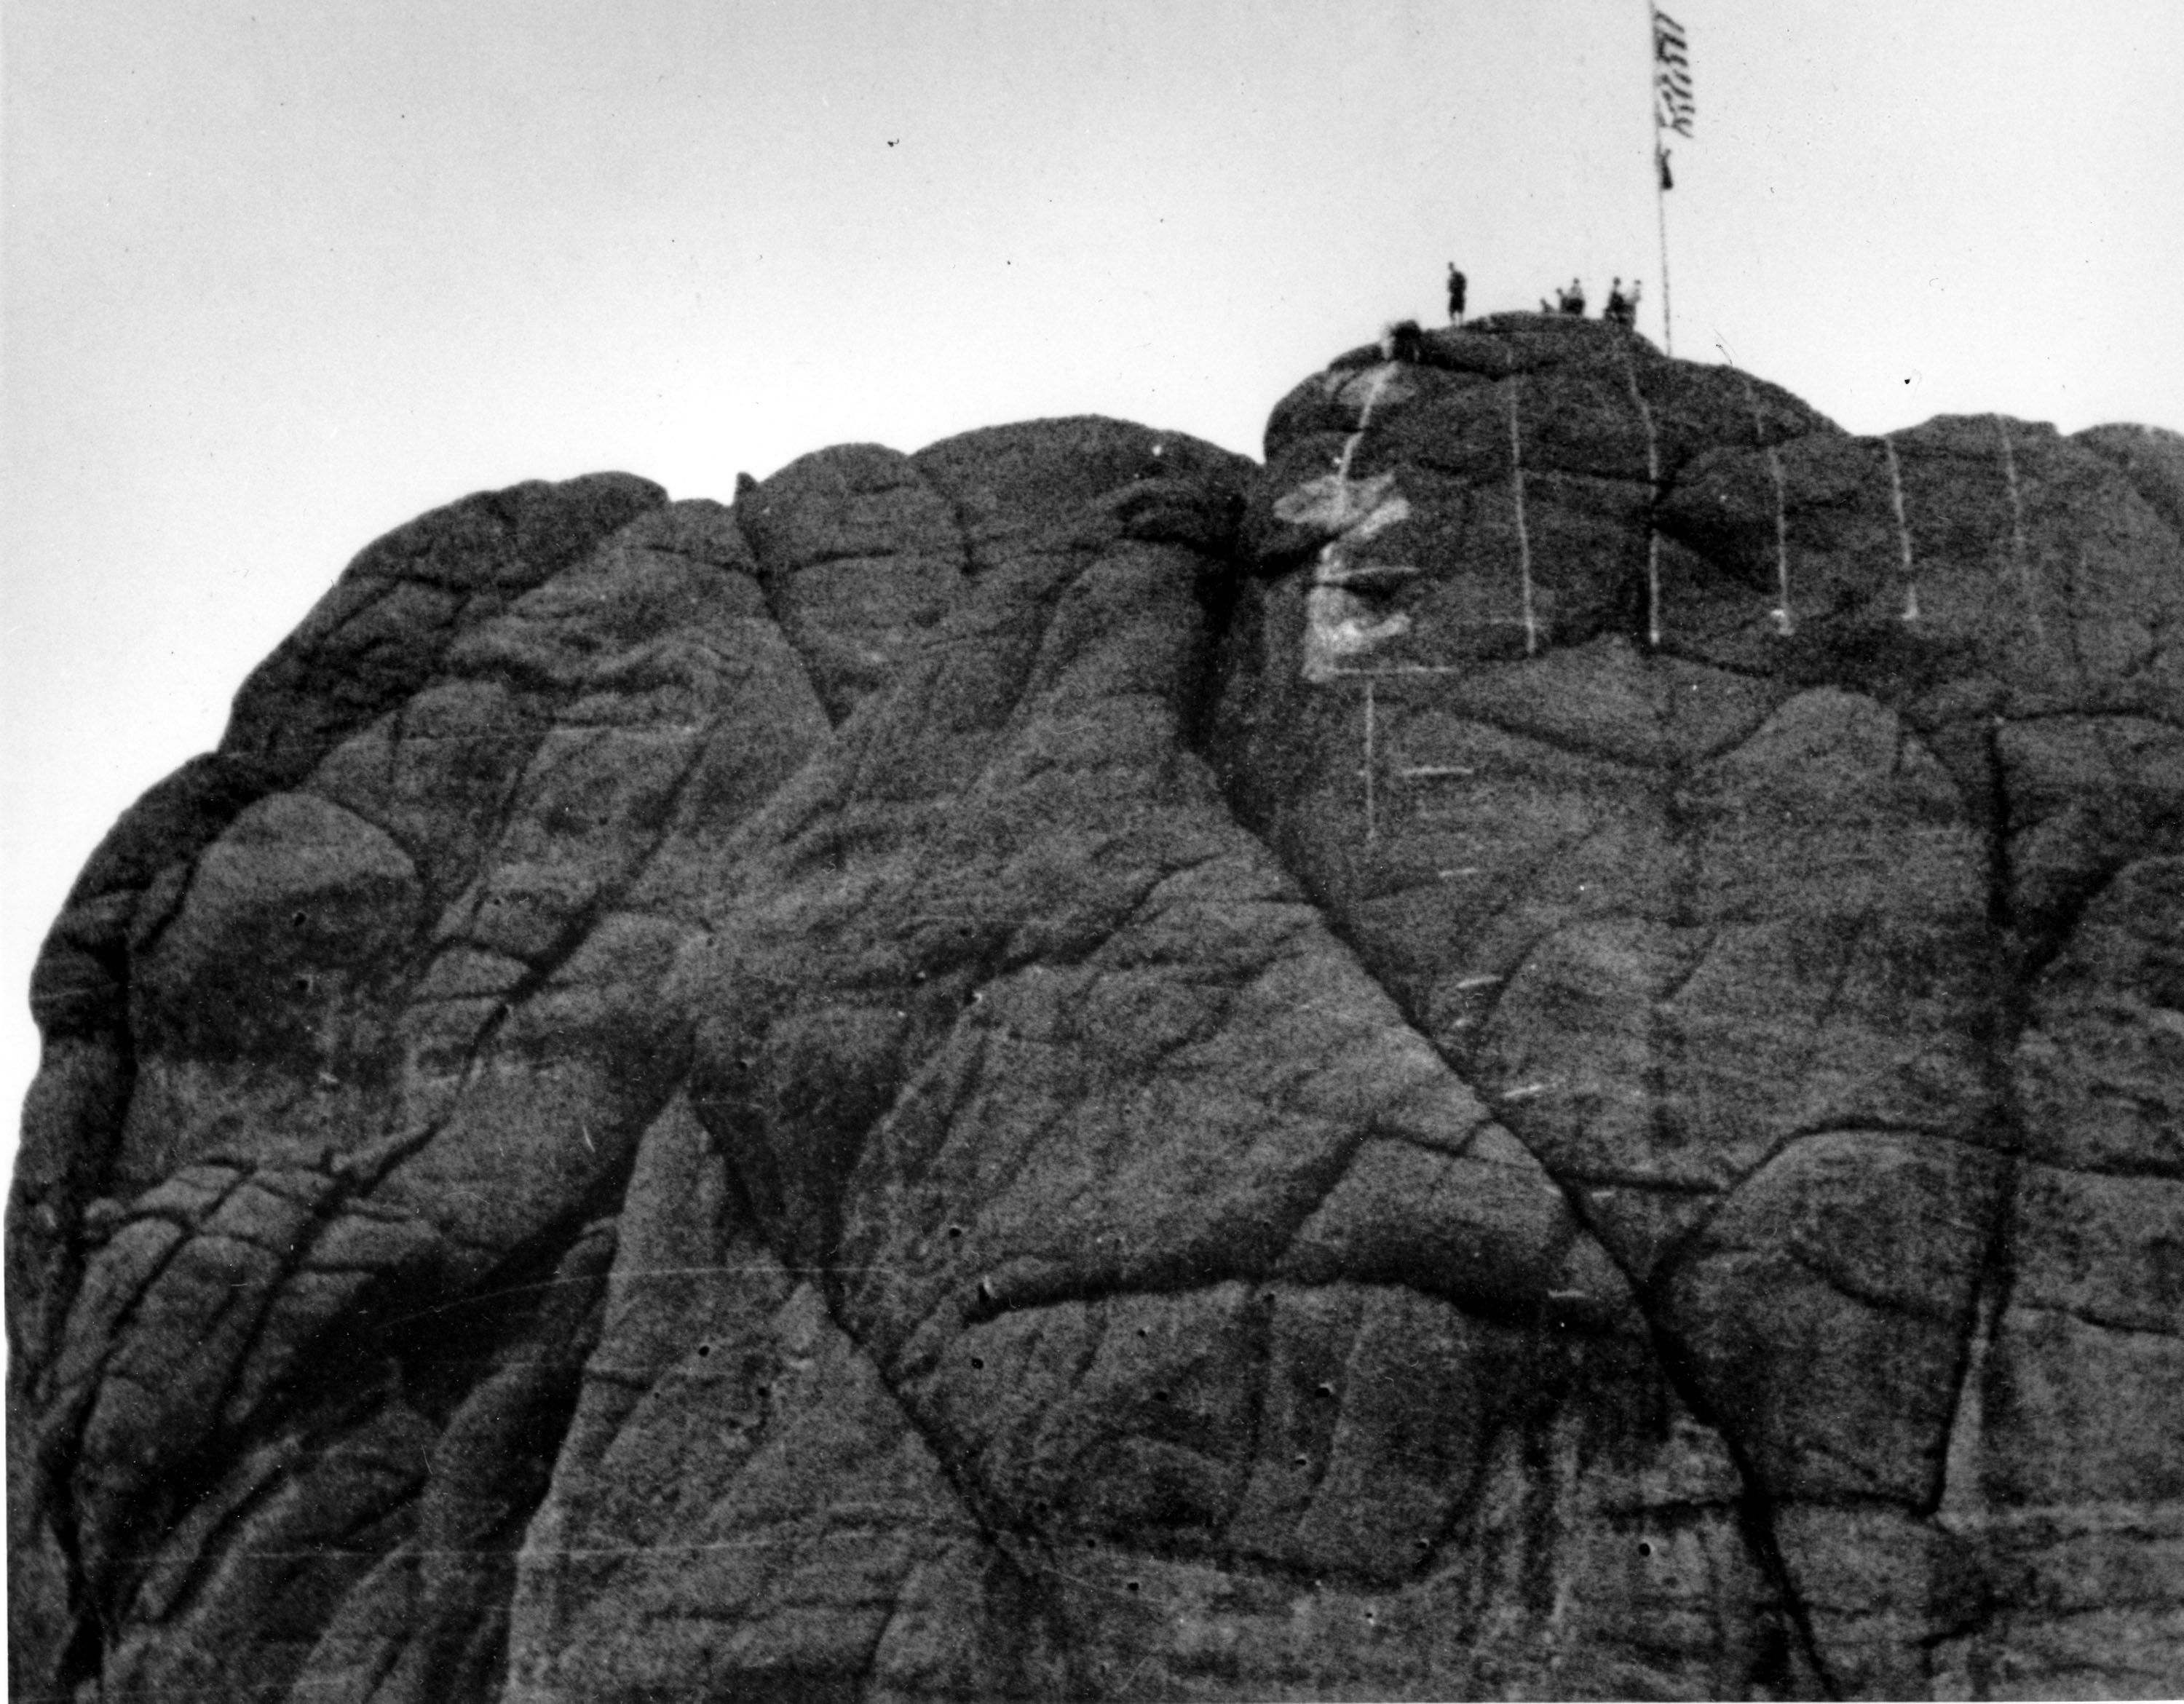 Sculptor Gutzon Borglum has marked off the rock which he will carve the likenesses of U.S. Presidents George Washington, Thomas Jefferson, Abraham Lincoln and Theodore Roosevelt in the Black Hills area of Keystone, S.D., Aug. 15, 1927.